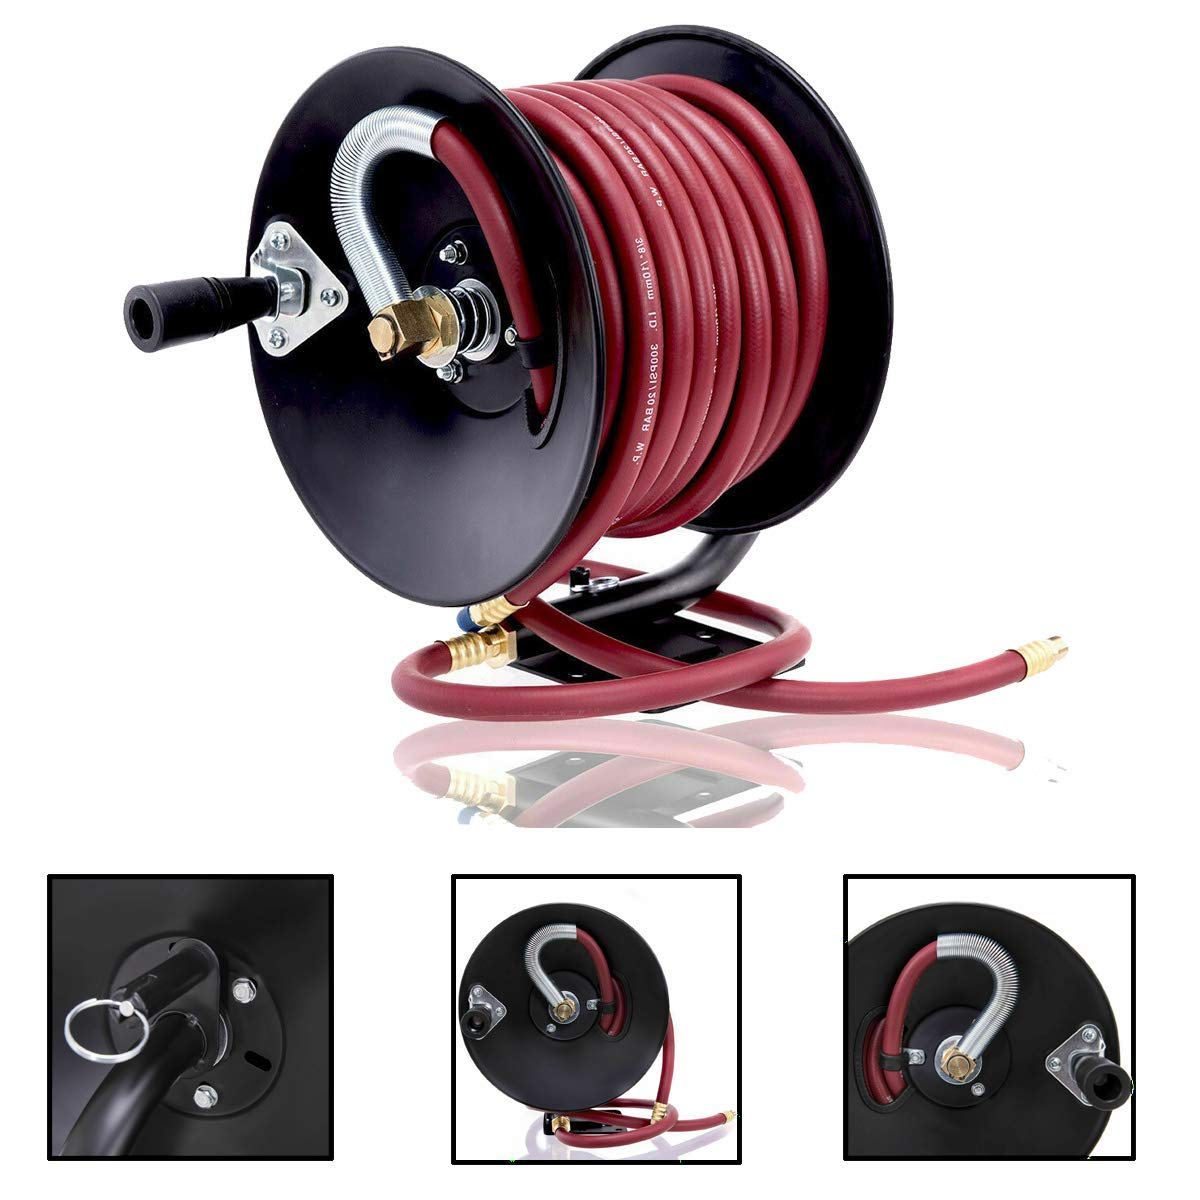 Selva Manual Hand Crank Air Hose Reel with 3/8''x 50FT Rubber Air Compressor Hose | Heavy Duty Durable Weather Resistant Ergonomic Handle Safe Secure 300PSI Max Pressure | For Home Lawn Garden Pump